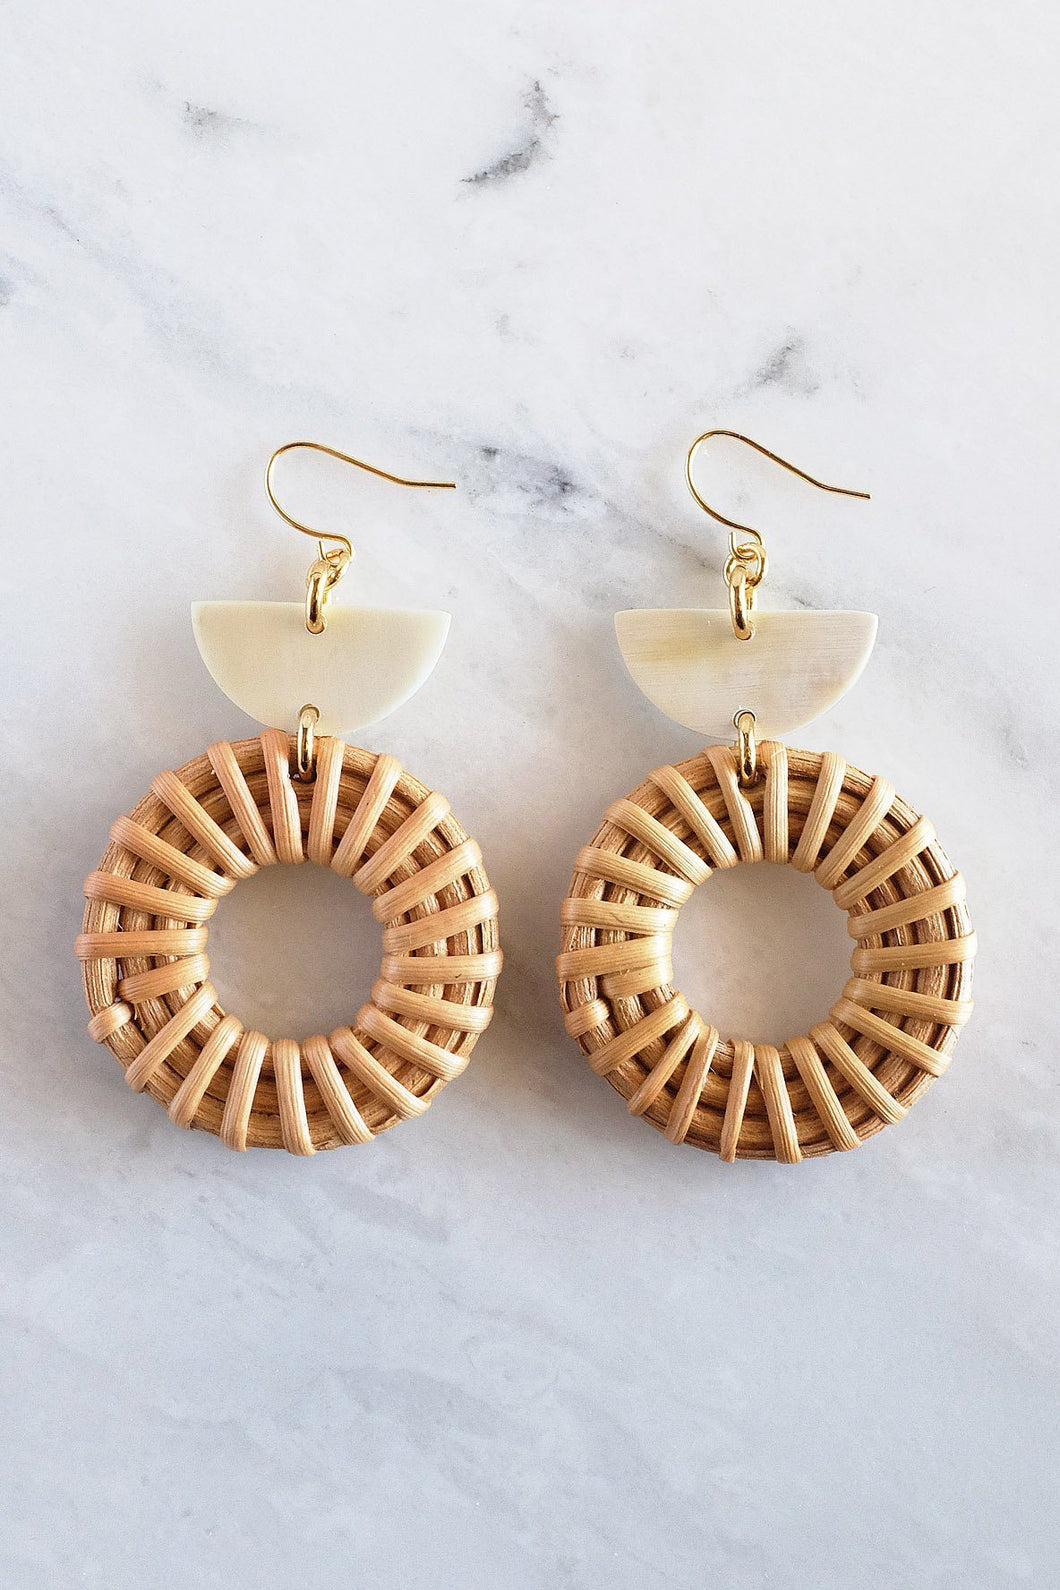 Jewelry: Earrings: Ninh Binh 16K Gold Plated Brass Honey Horn & Rattan (Straw/Wicker) Crescent & Donut.